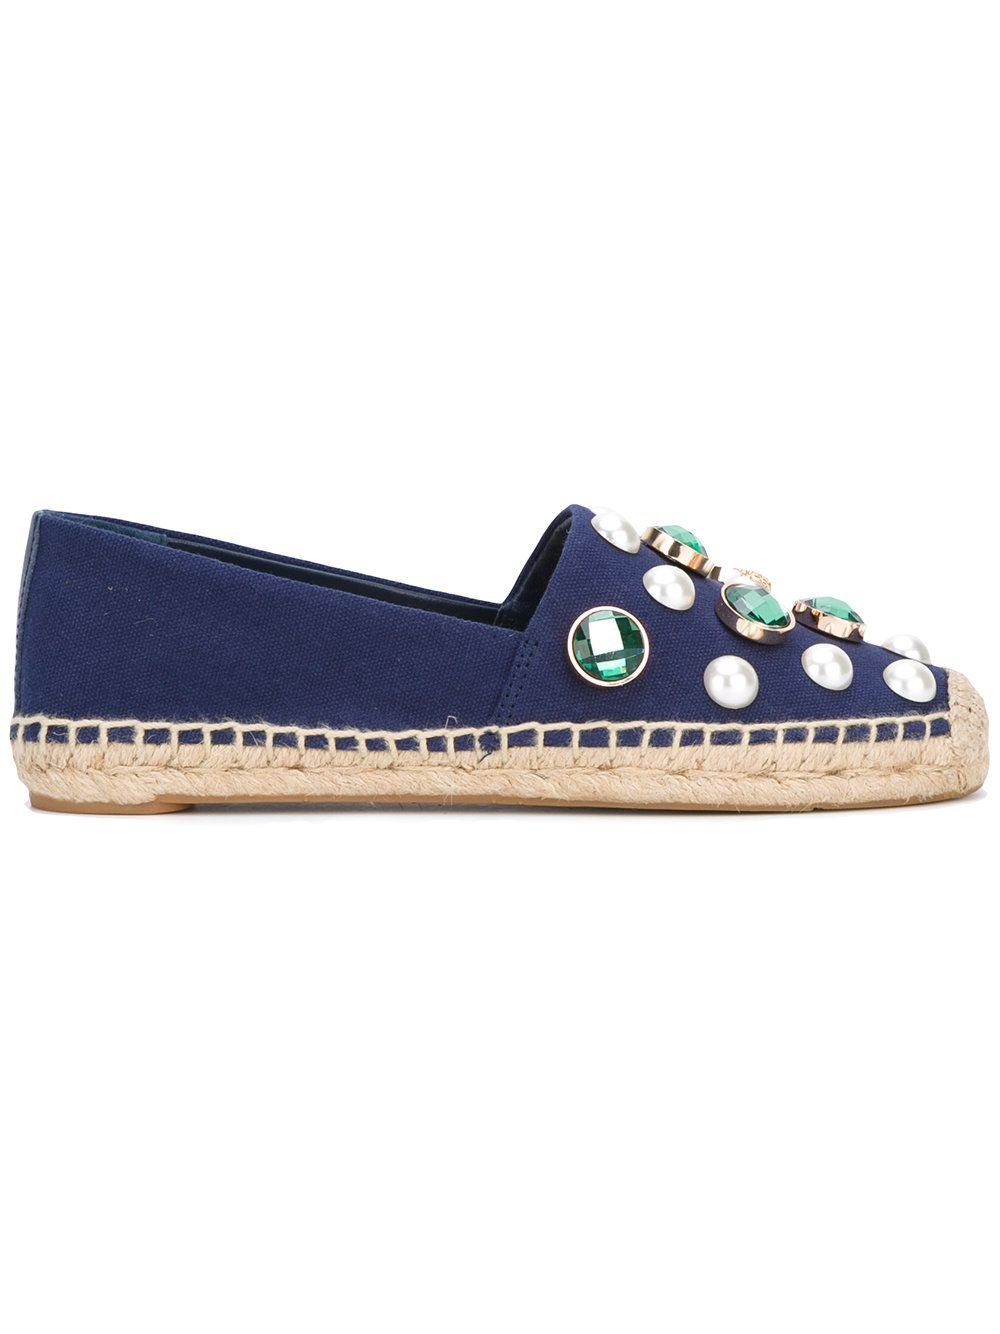 4b3026d4d Tory burch womens shoes   Half price books marketplace coupon code